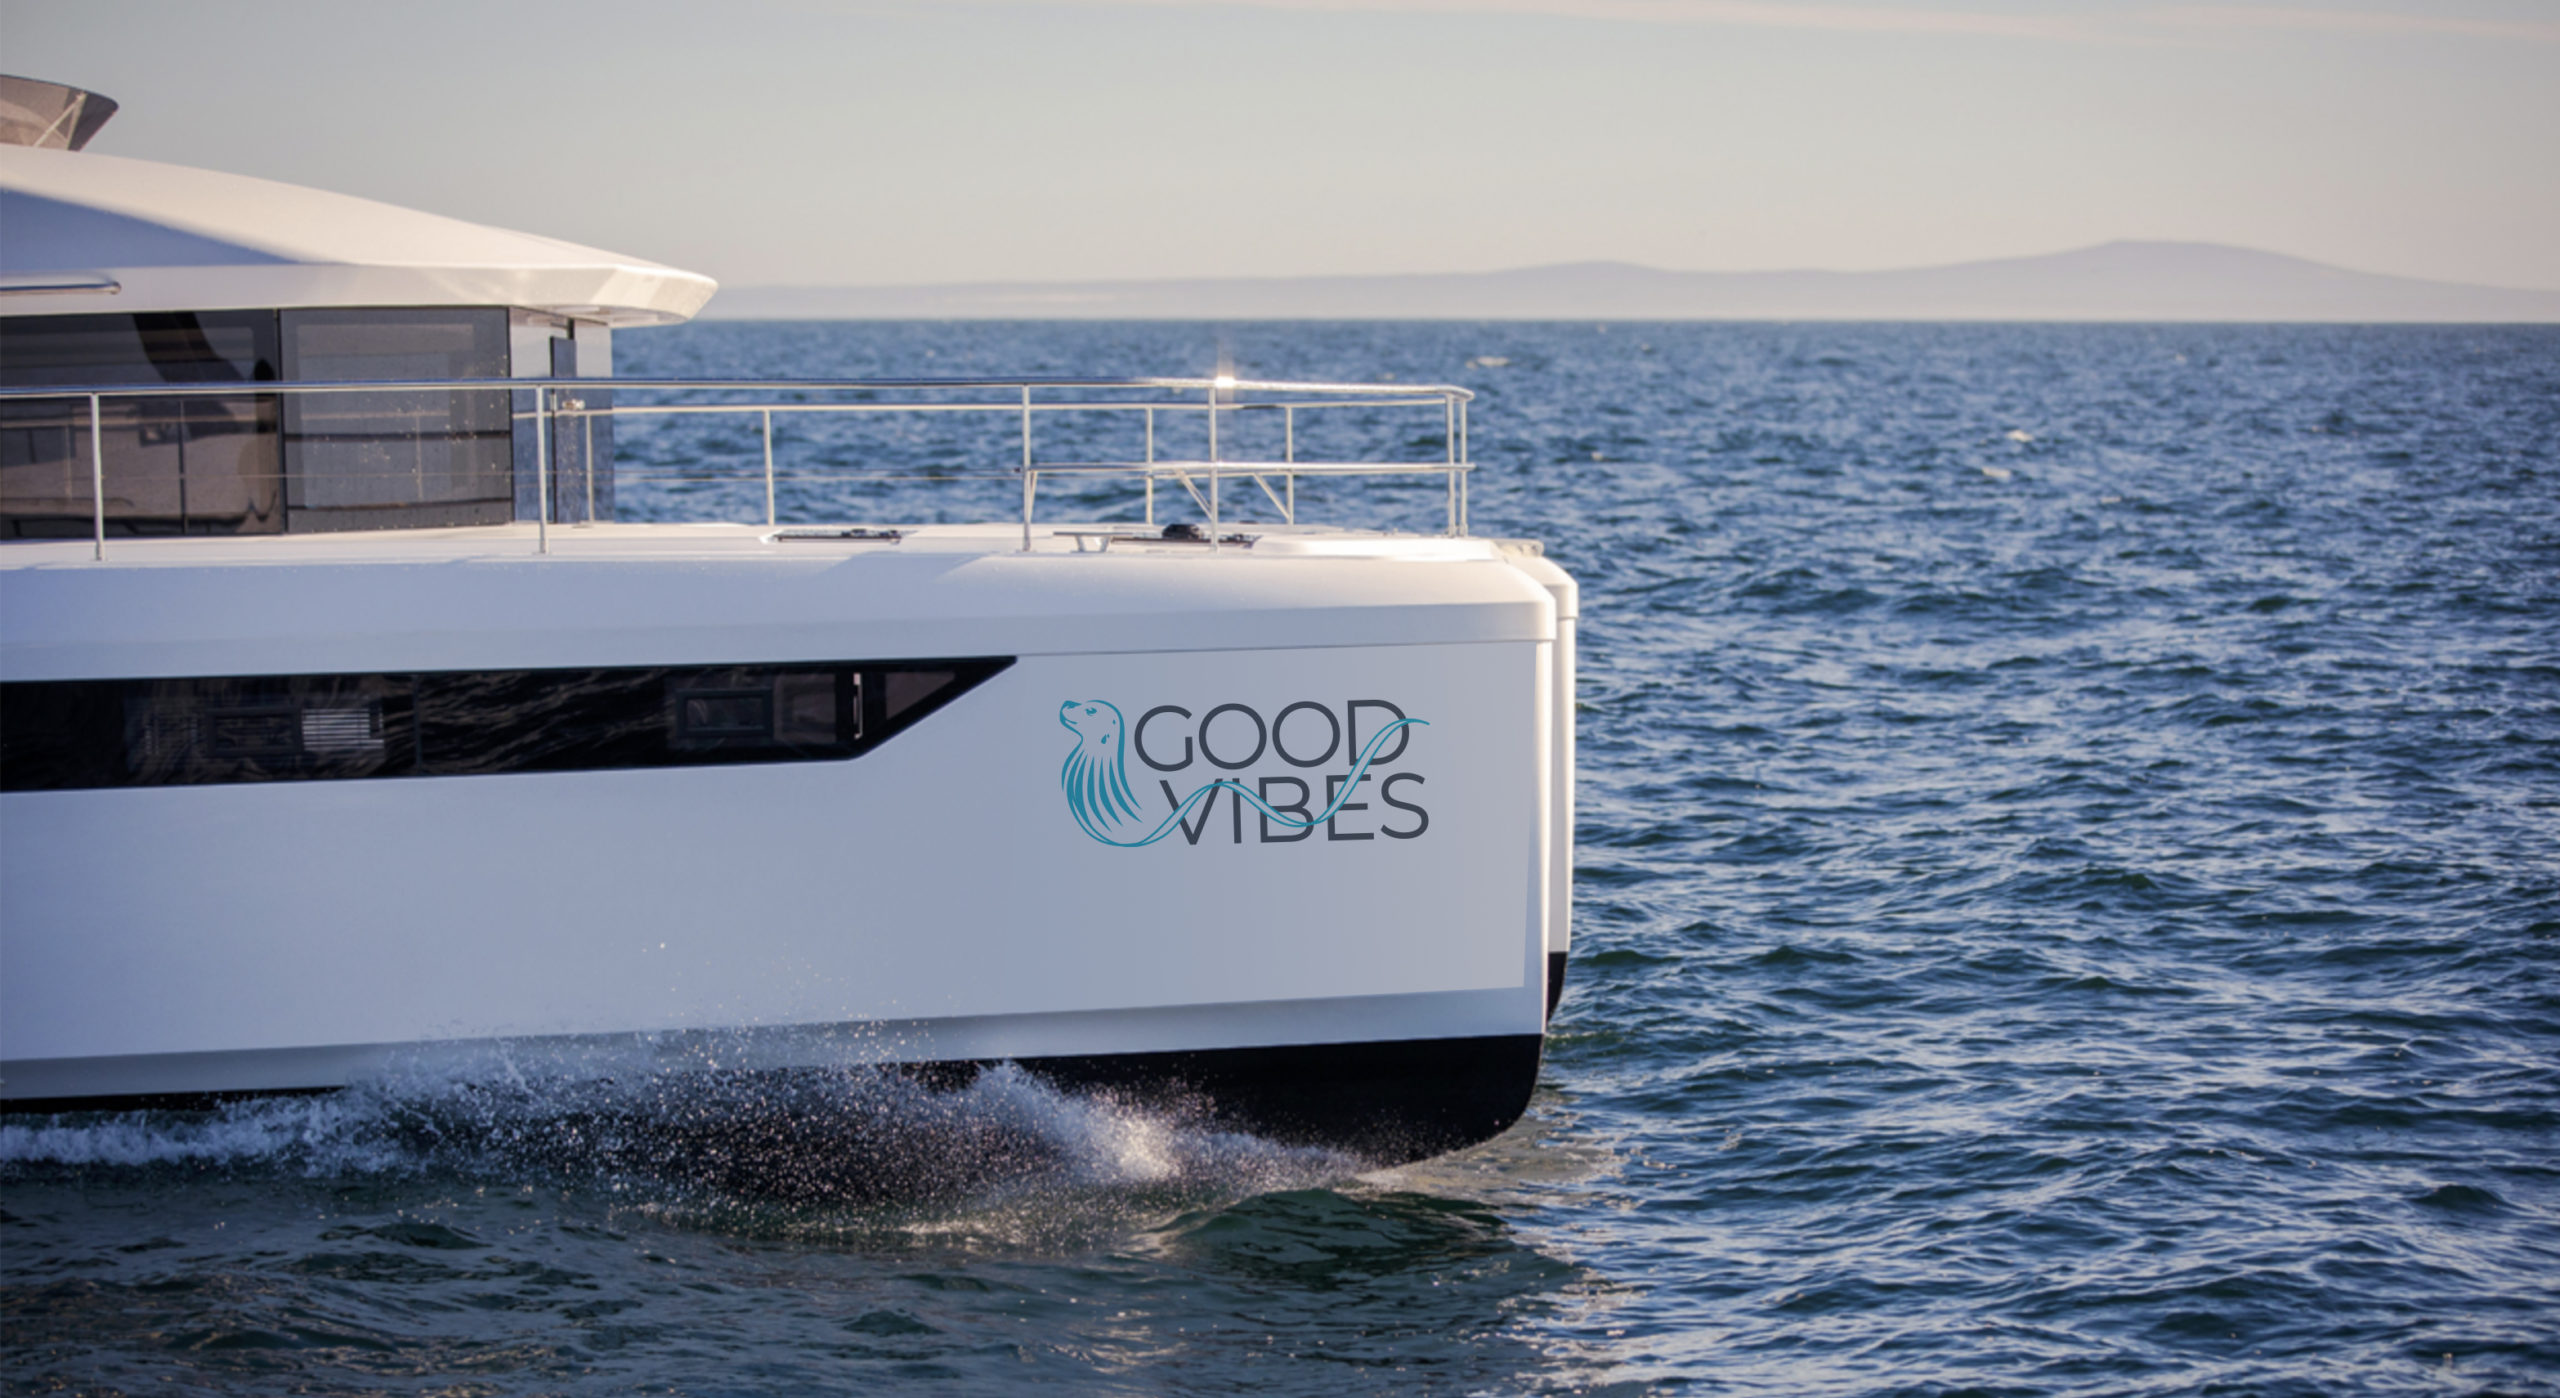 Good Vibes at sea